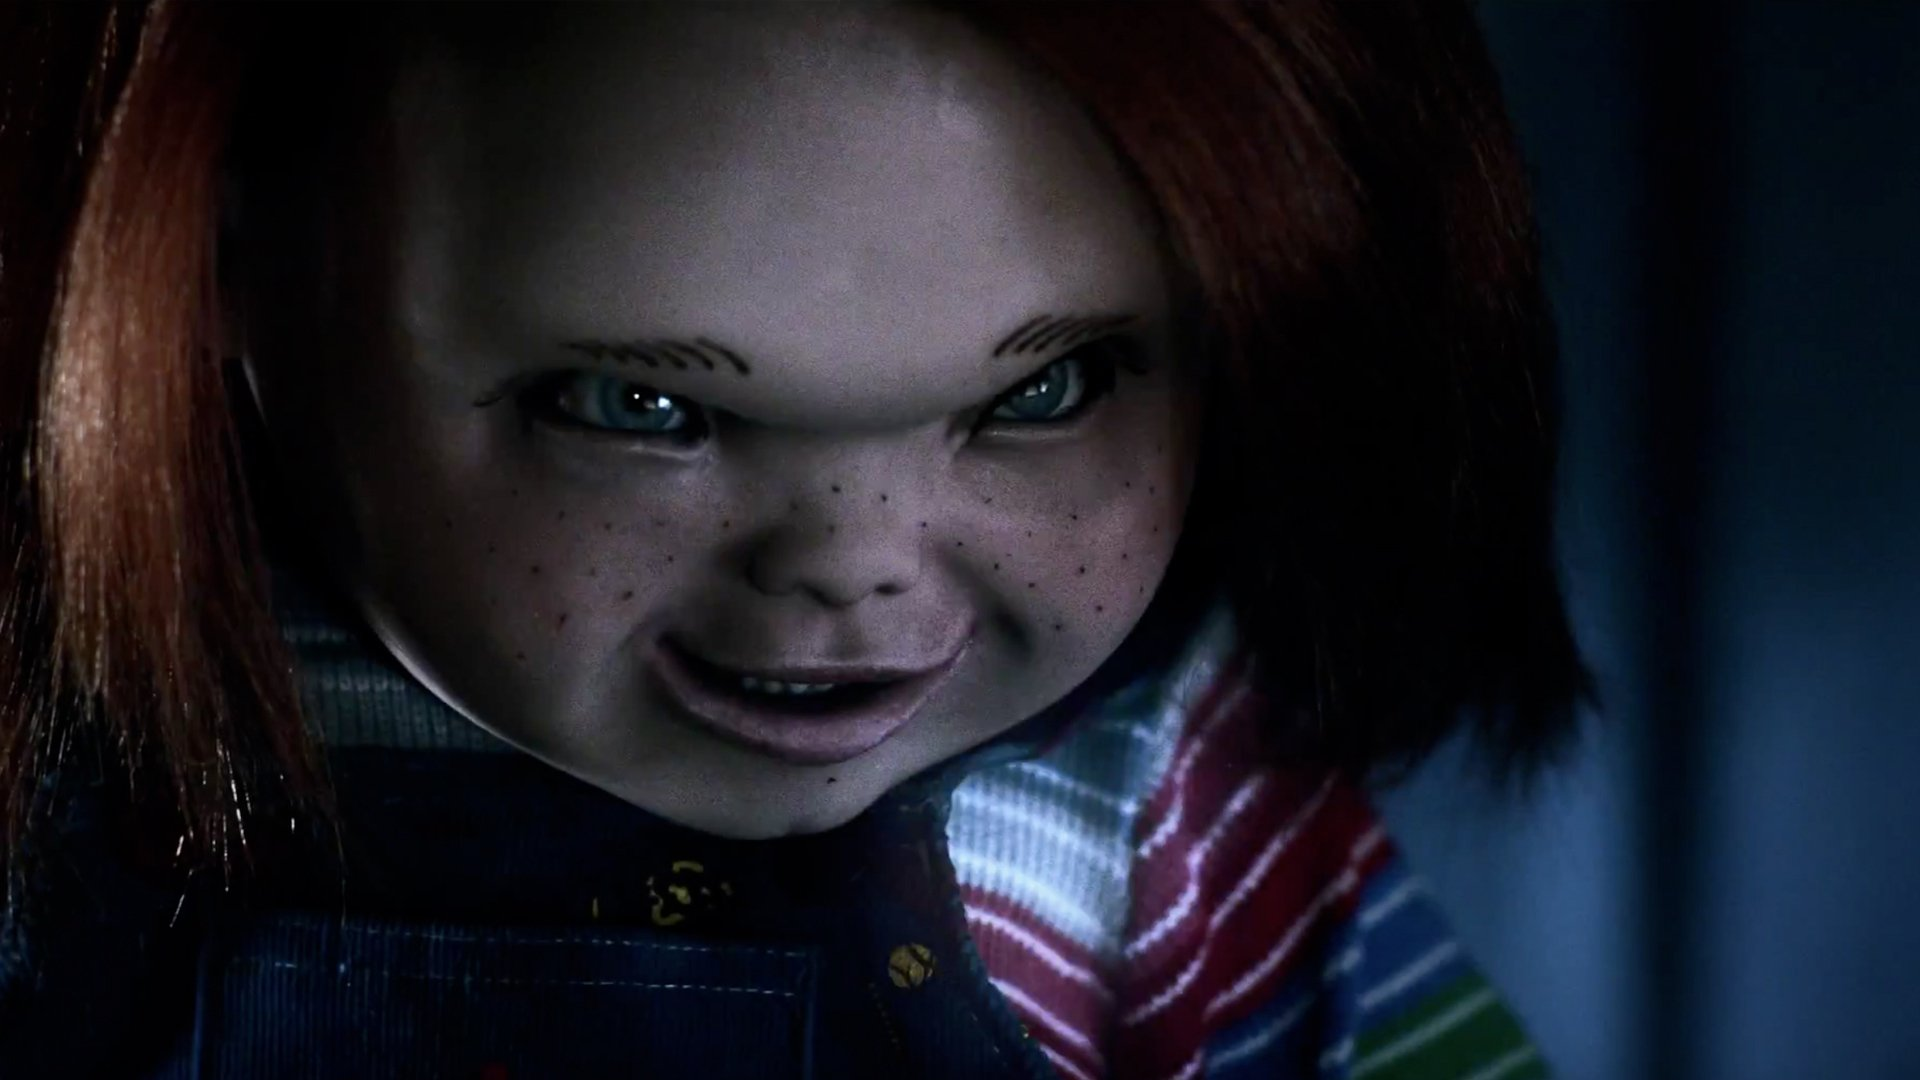 Curse of chucky full hd wallpaper and background image - Scary movie 5 wallpaper ...